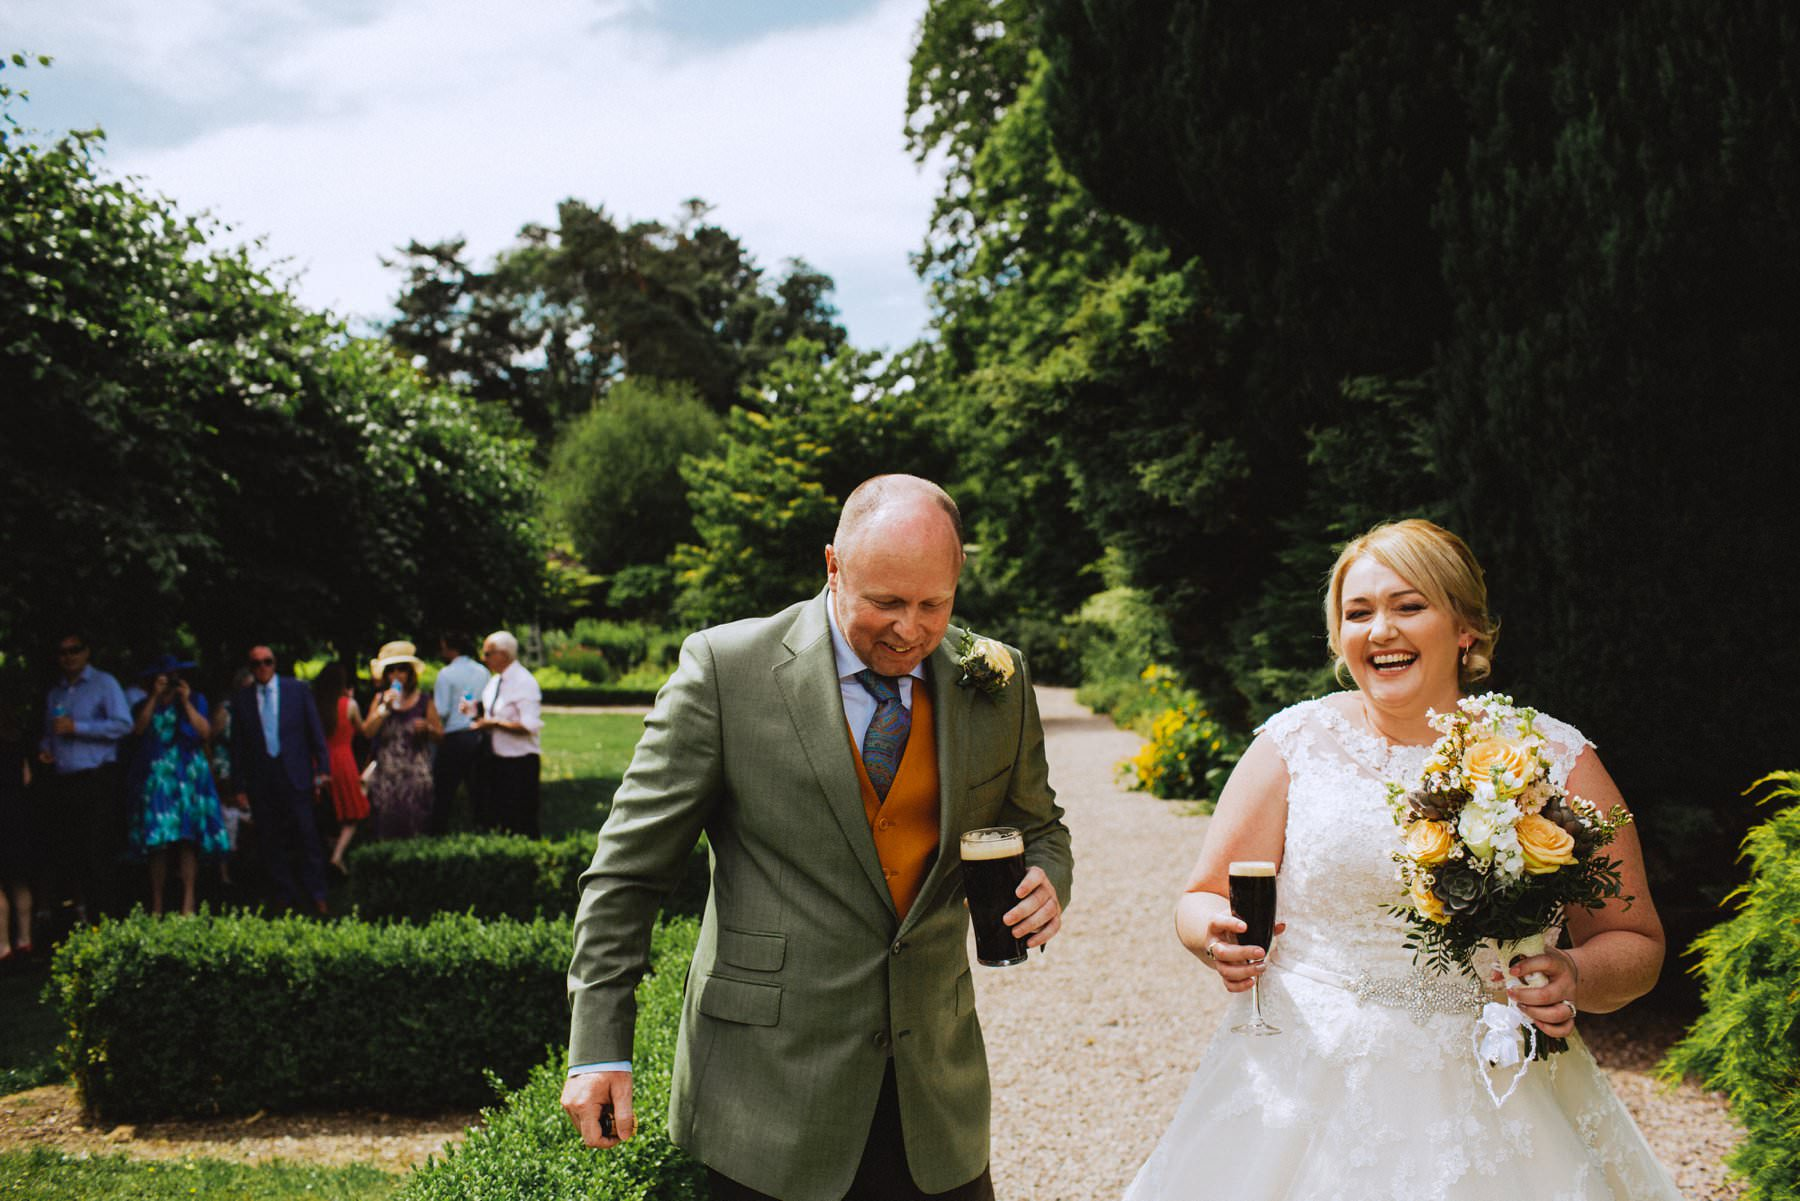 bald groom and plus size bride enjoy a guiness after their outdoor wedding ceremony at larchfield estate northern ireland